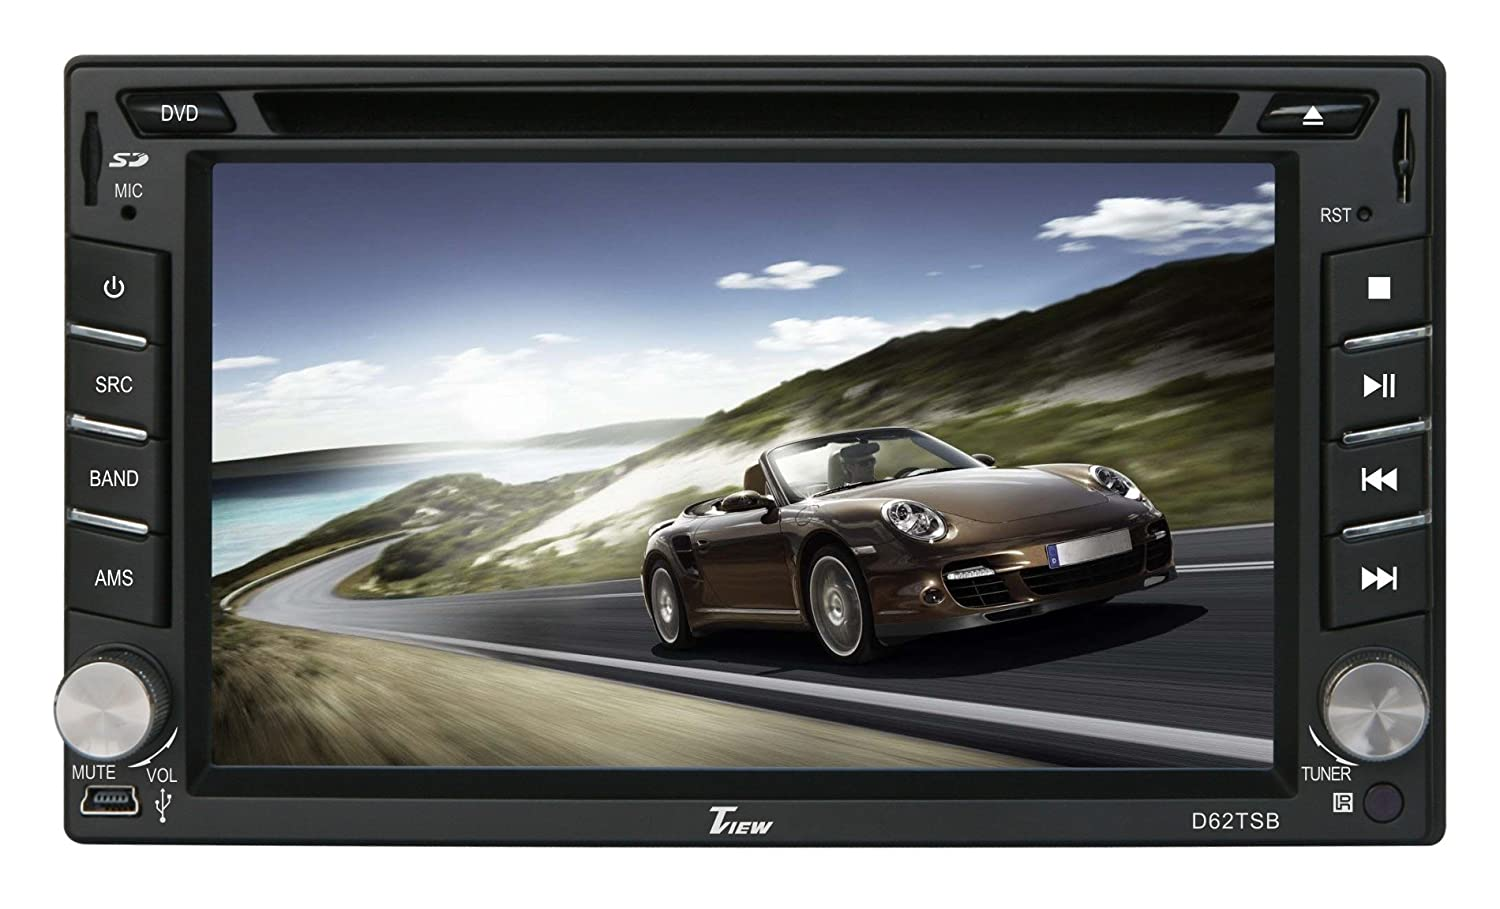 71N8 eVkMJL._SL1500_ amazon com tview d62tsb 6 2 inch double din touch screen with  at cita.asia